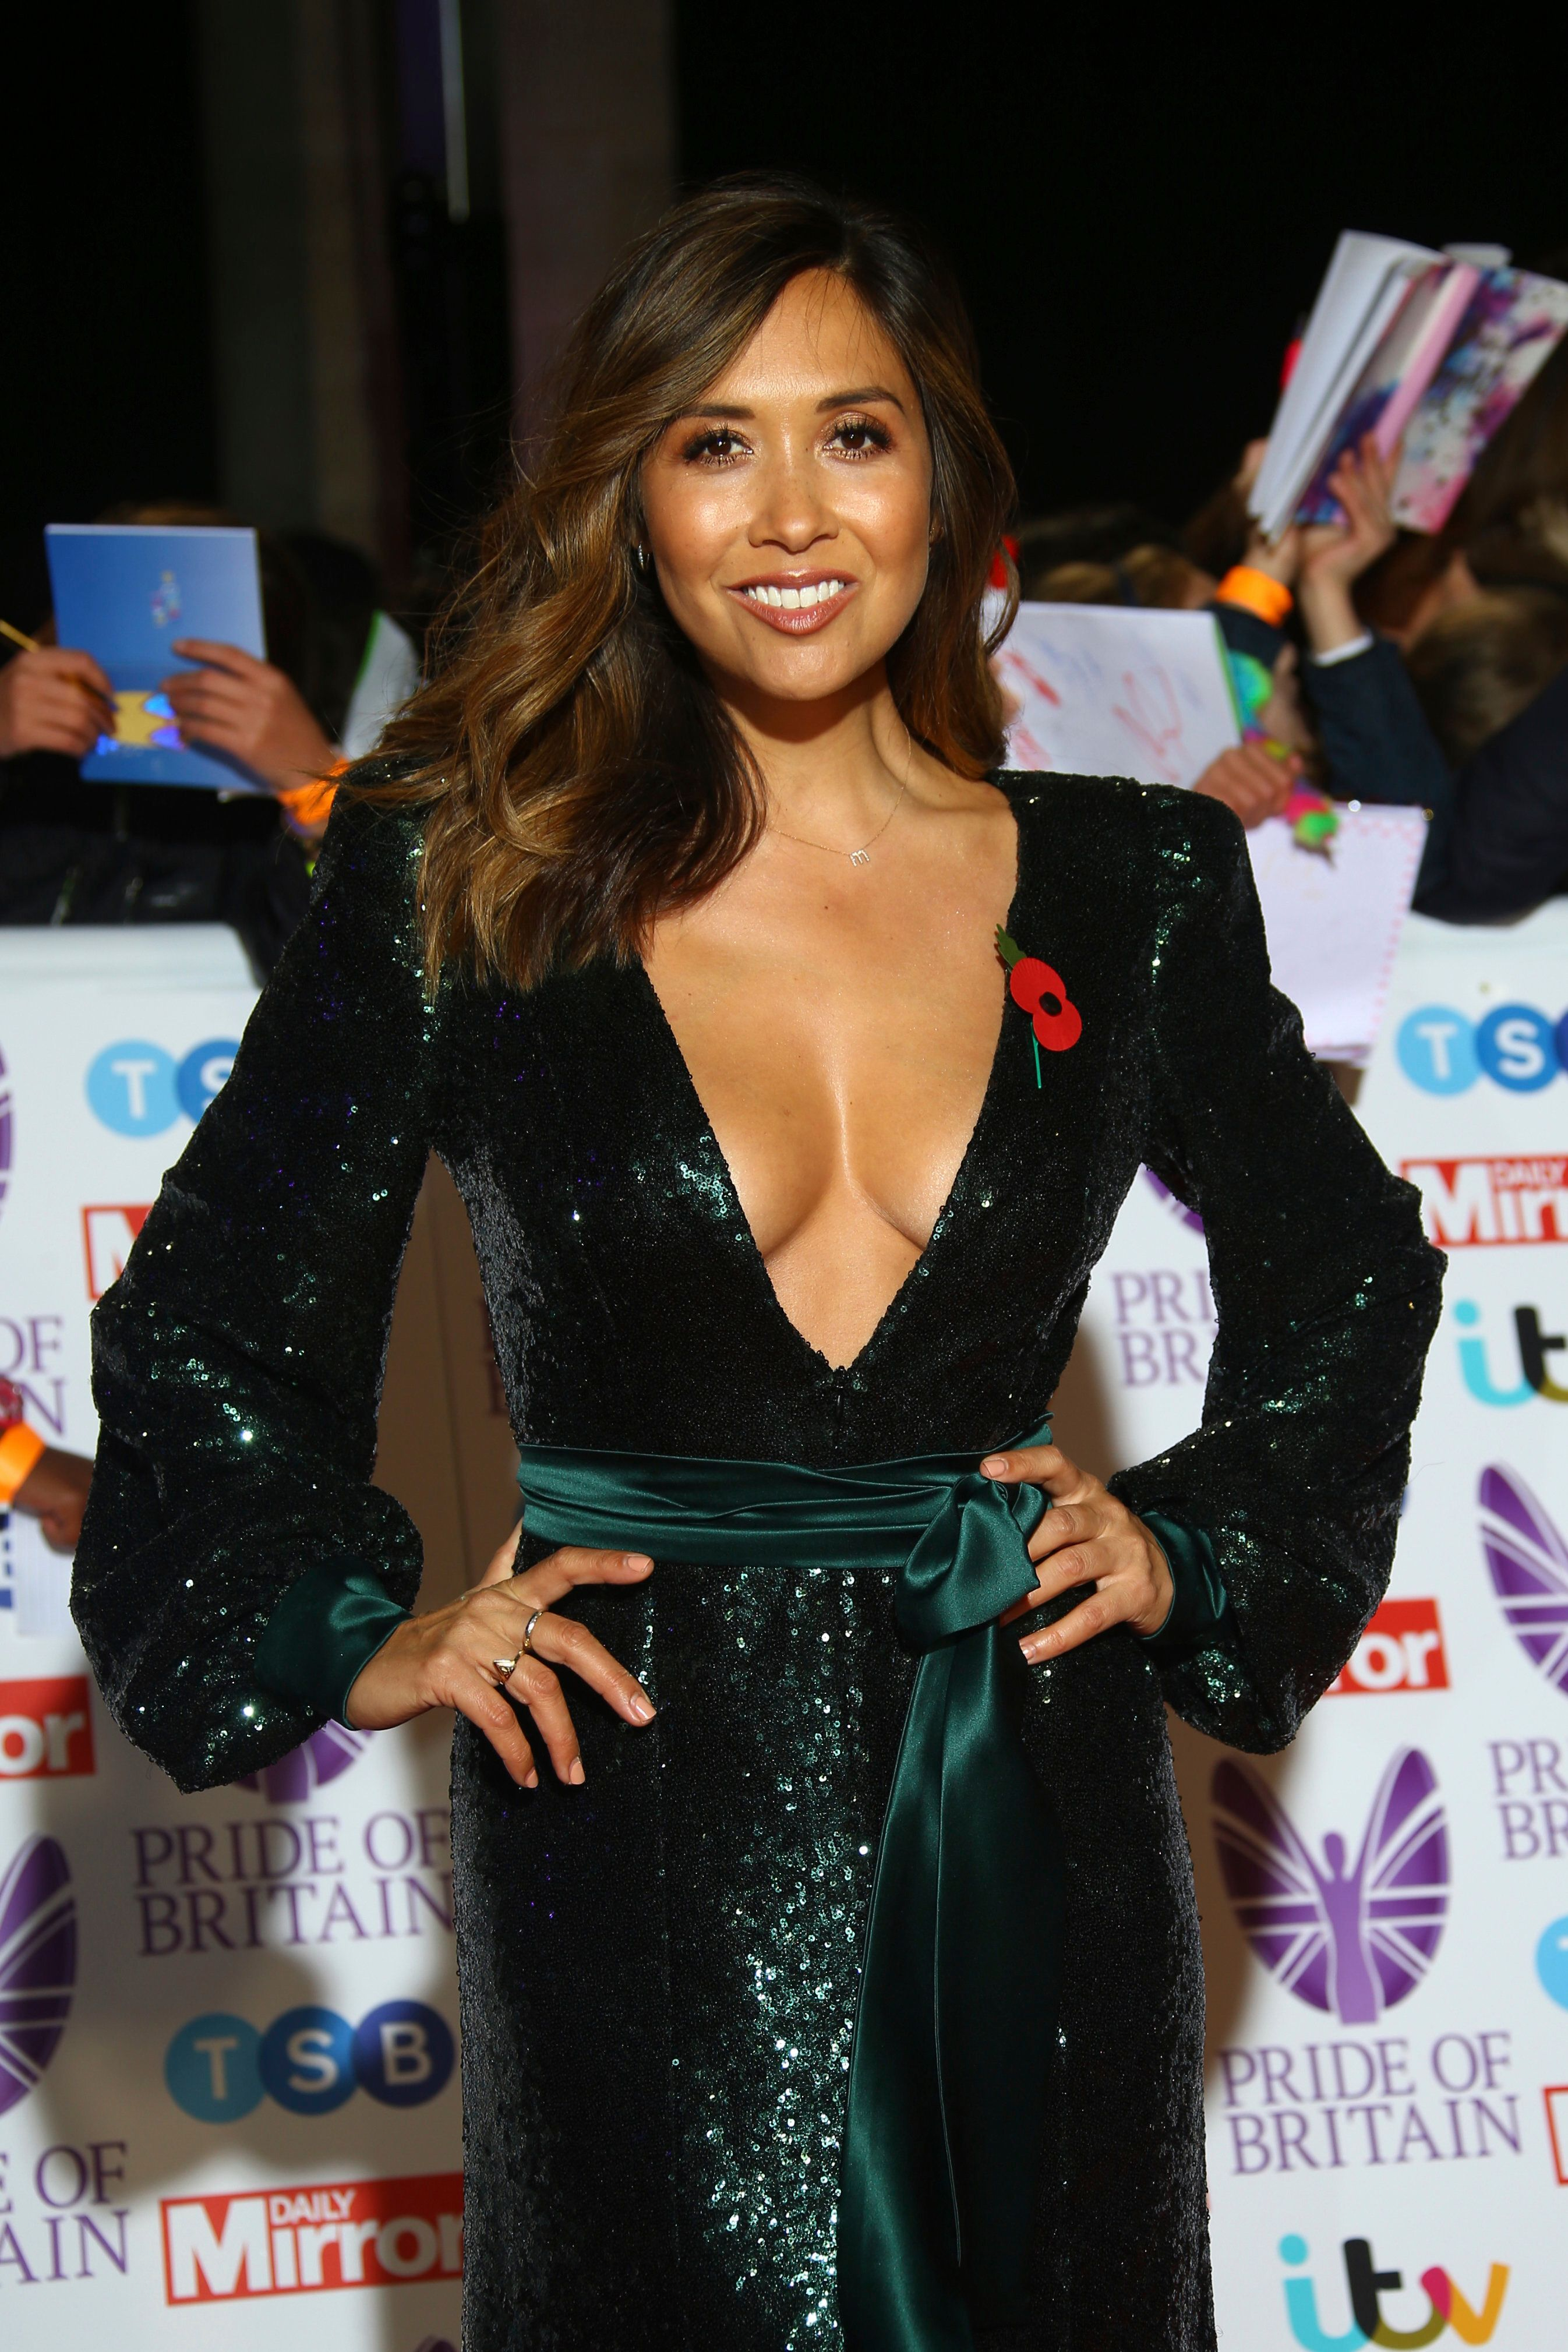 Myleene Klass Announces She's Pregnant With Her Third